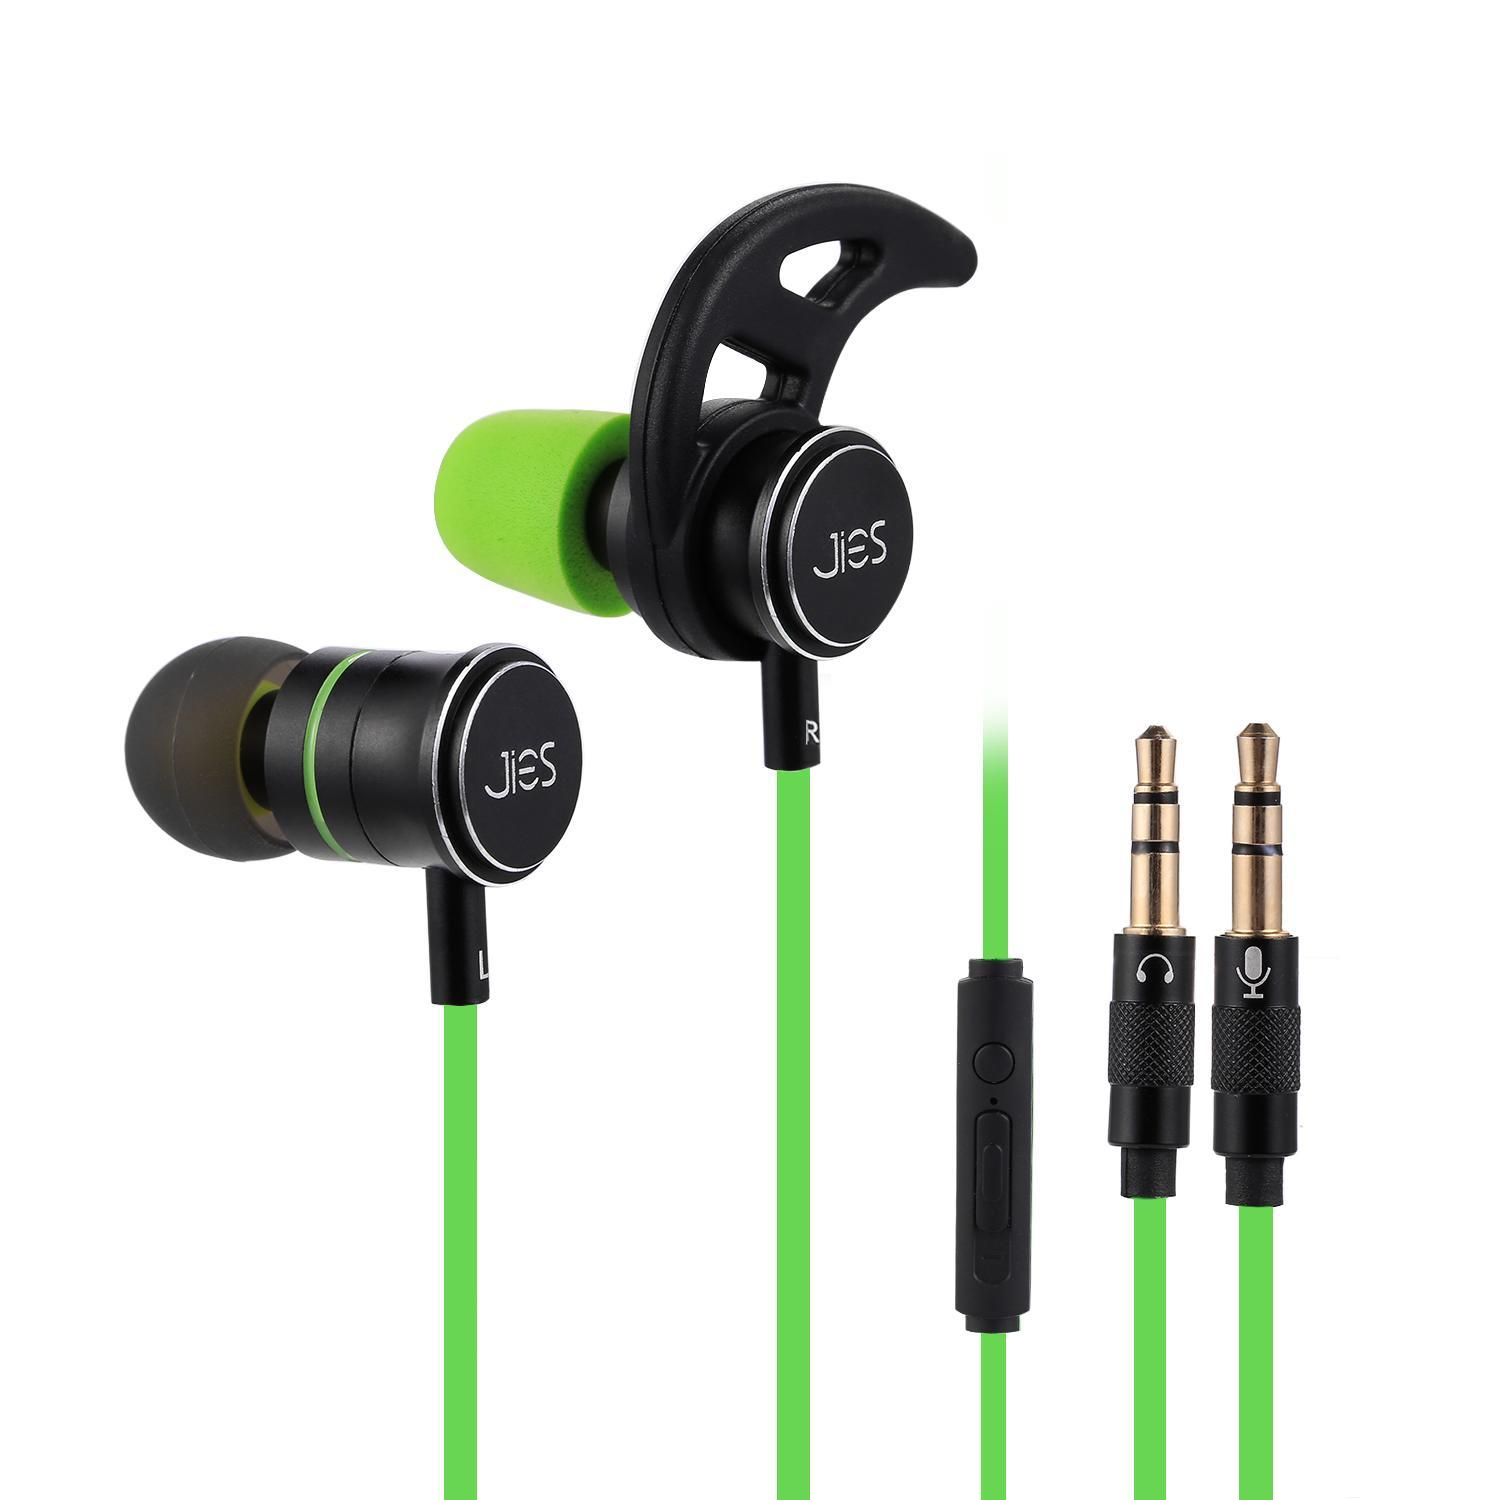 Wired Gaming Headphone In Ear with Mic Extension Cable 3.5mm Stereo Earphones for PC Laptop Cellphone HFON